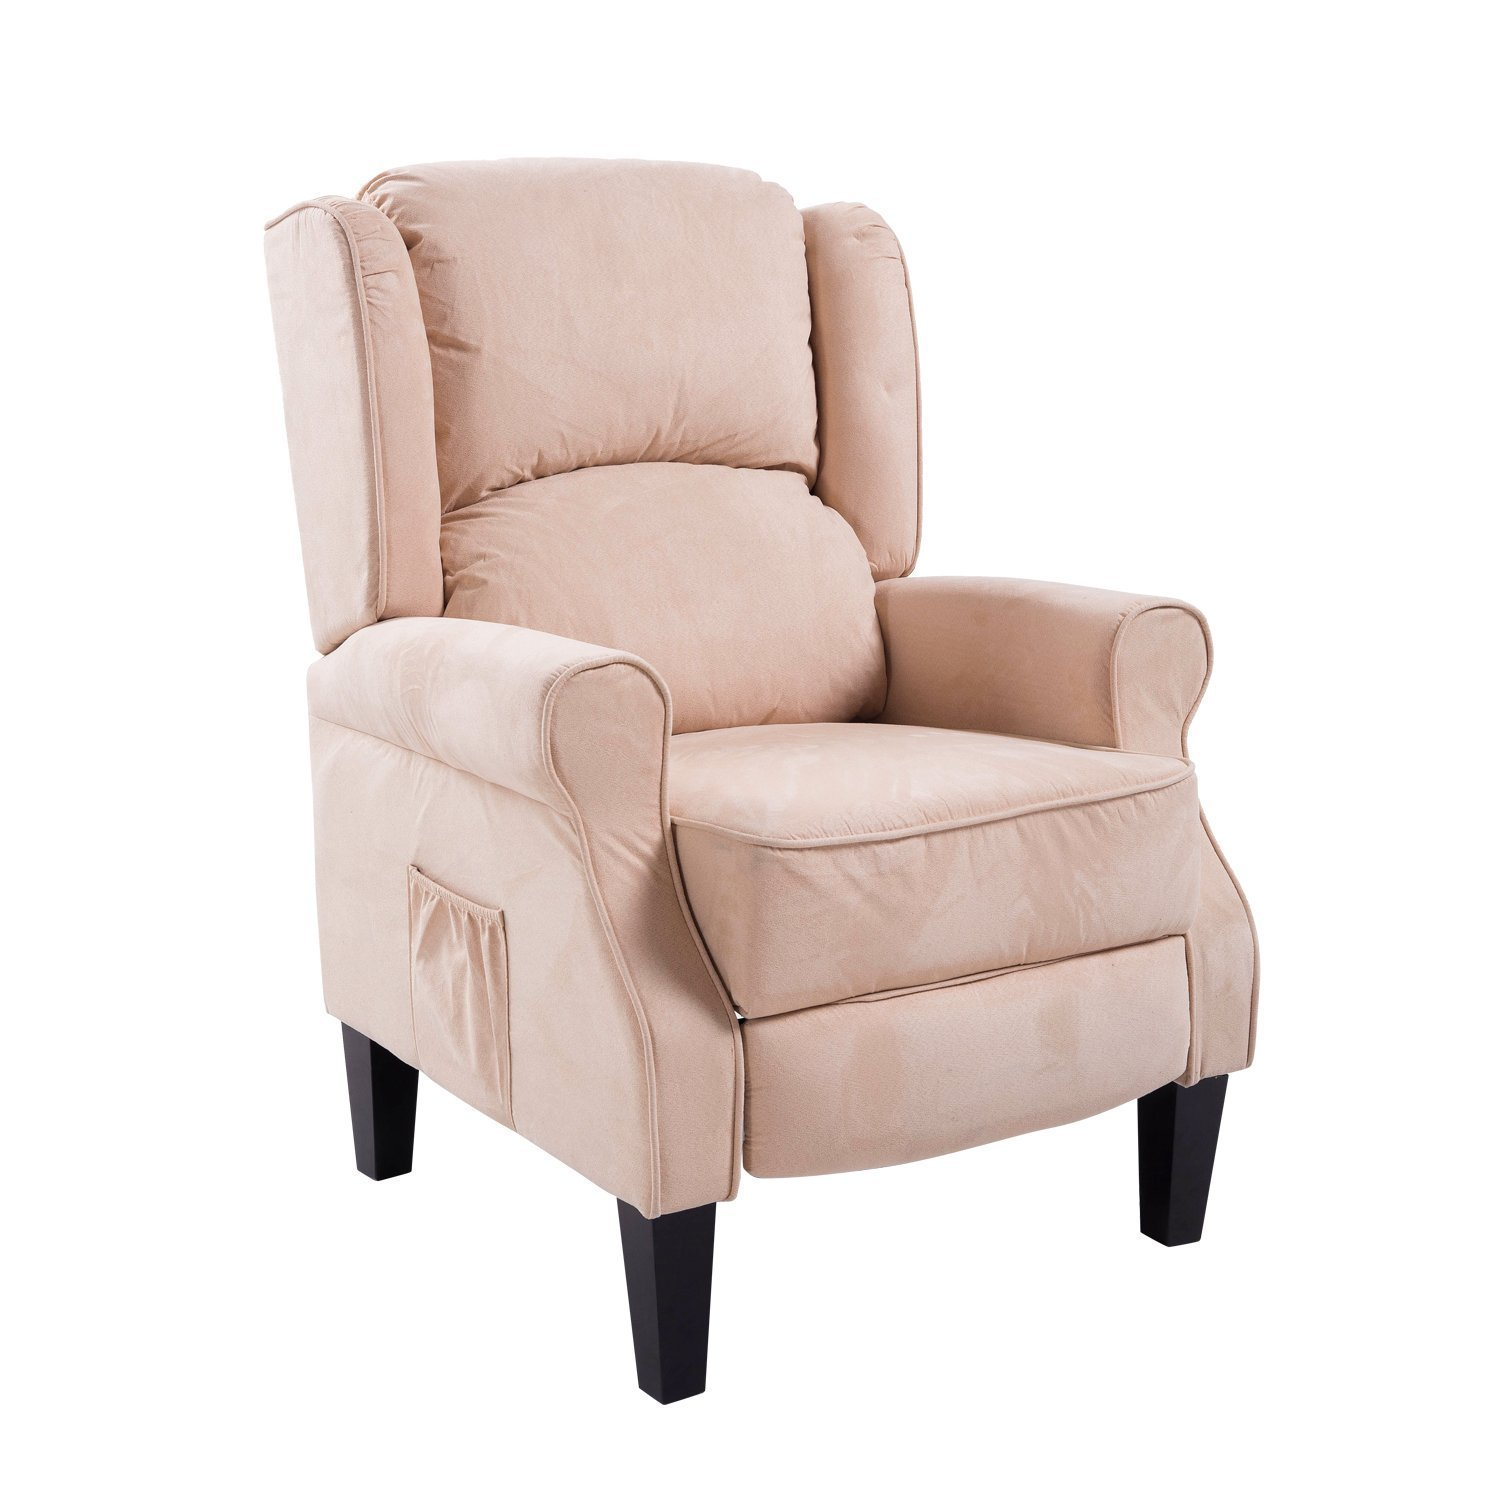 HOMCOM Personal Heated Vibrating Faux Suede Massage Recliner Chair - Cream White